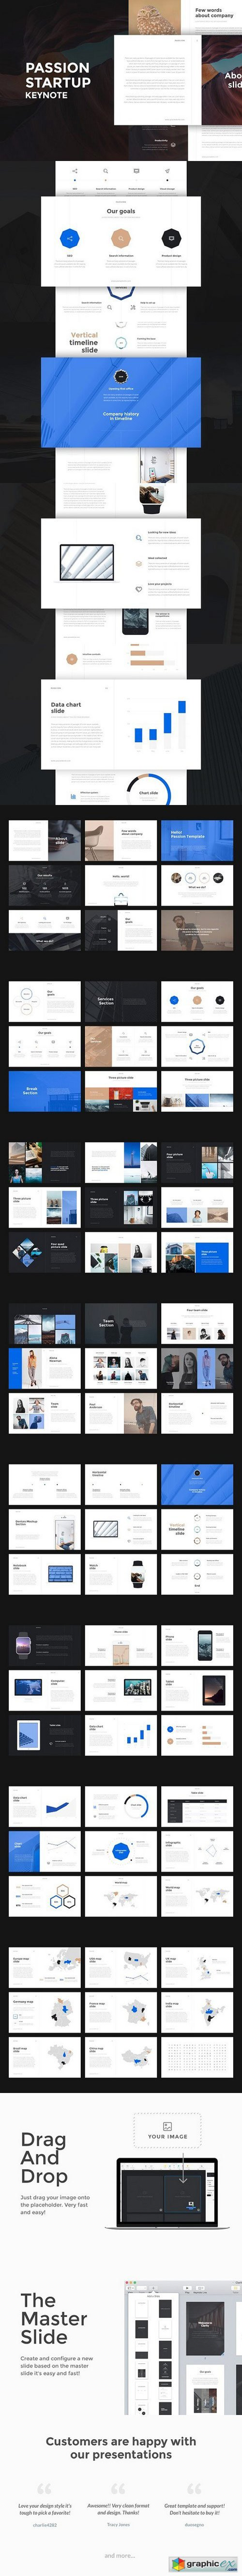 Passion Keynote Template + GIFT